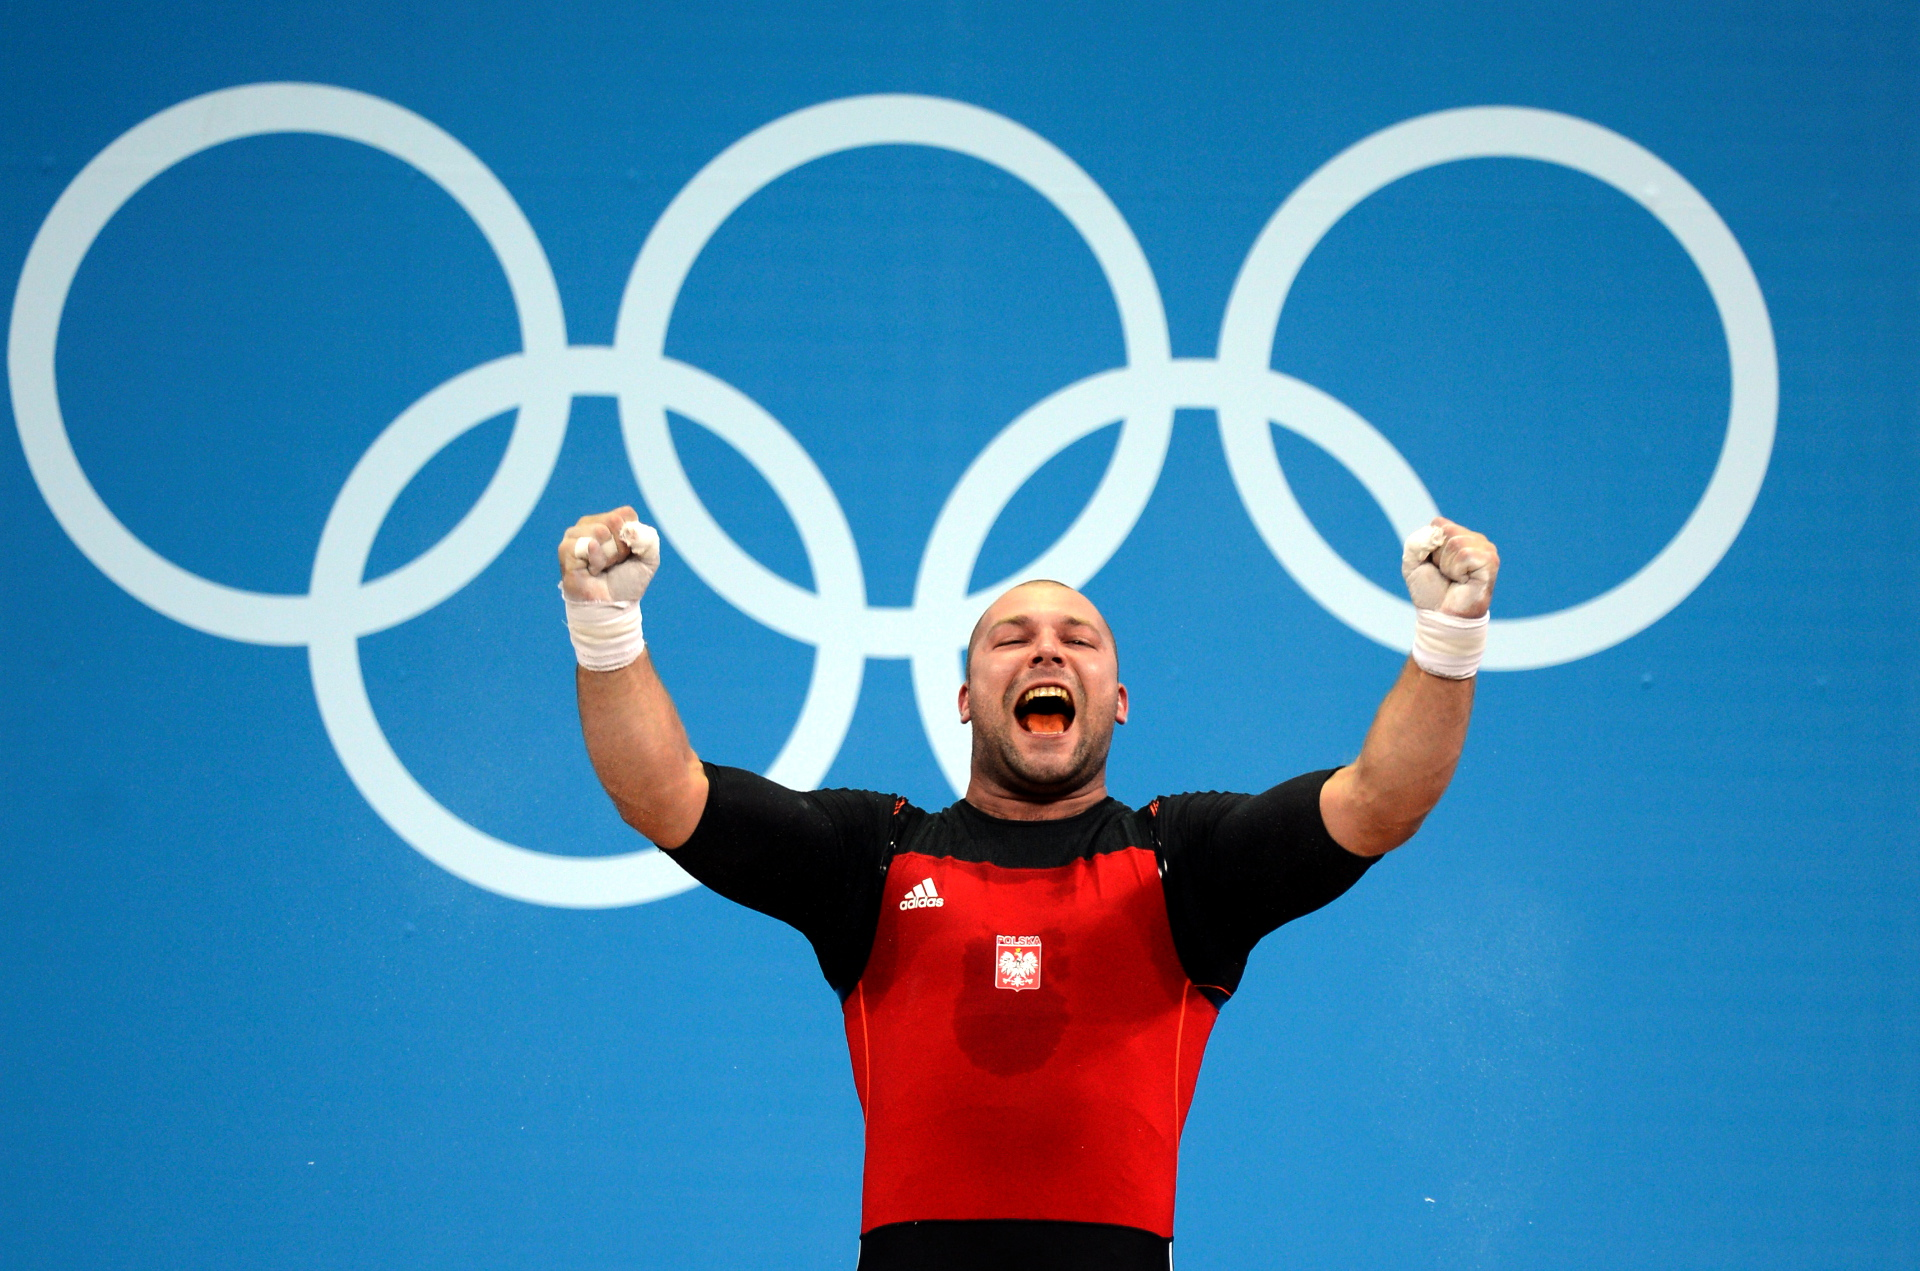 Bartłomiej Bonk is the Olympic vice-champion!